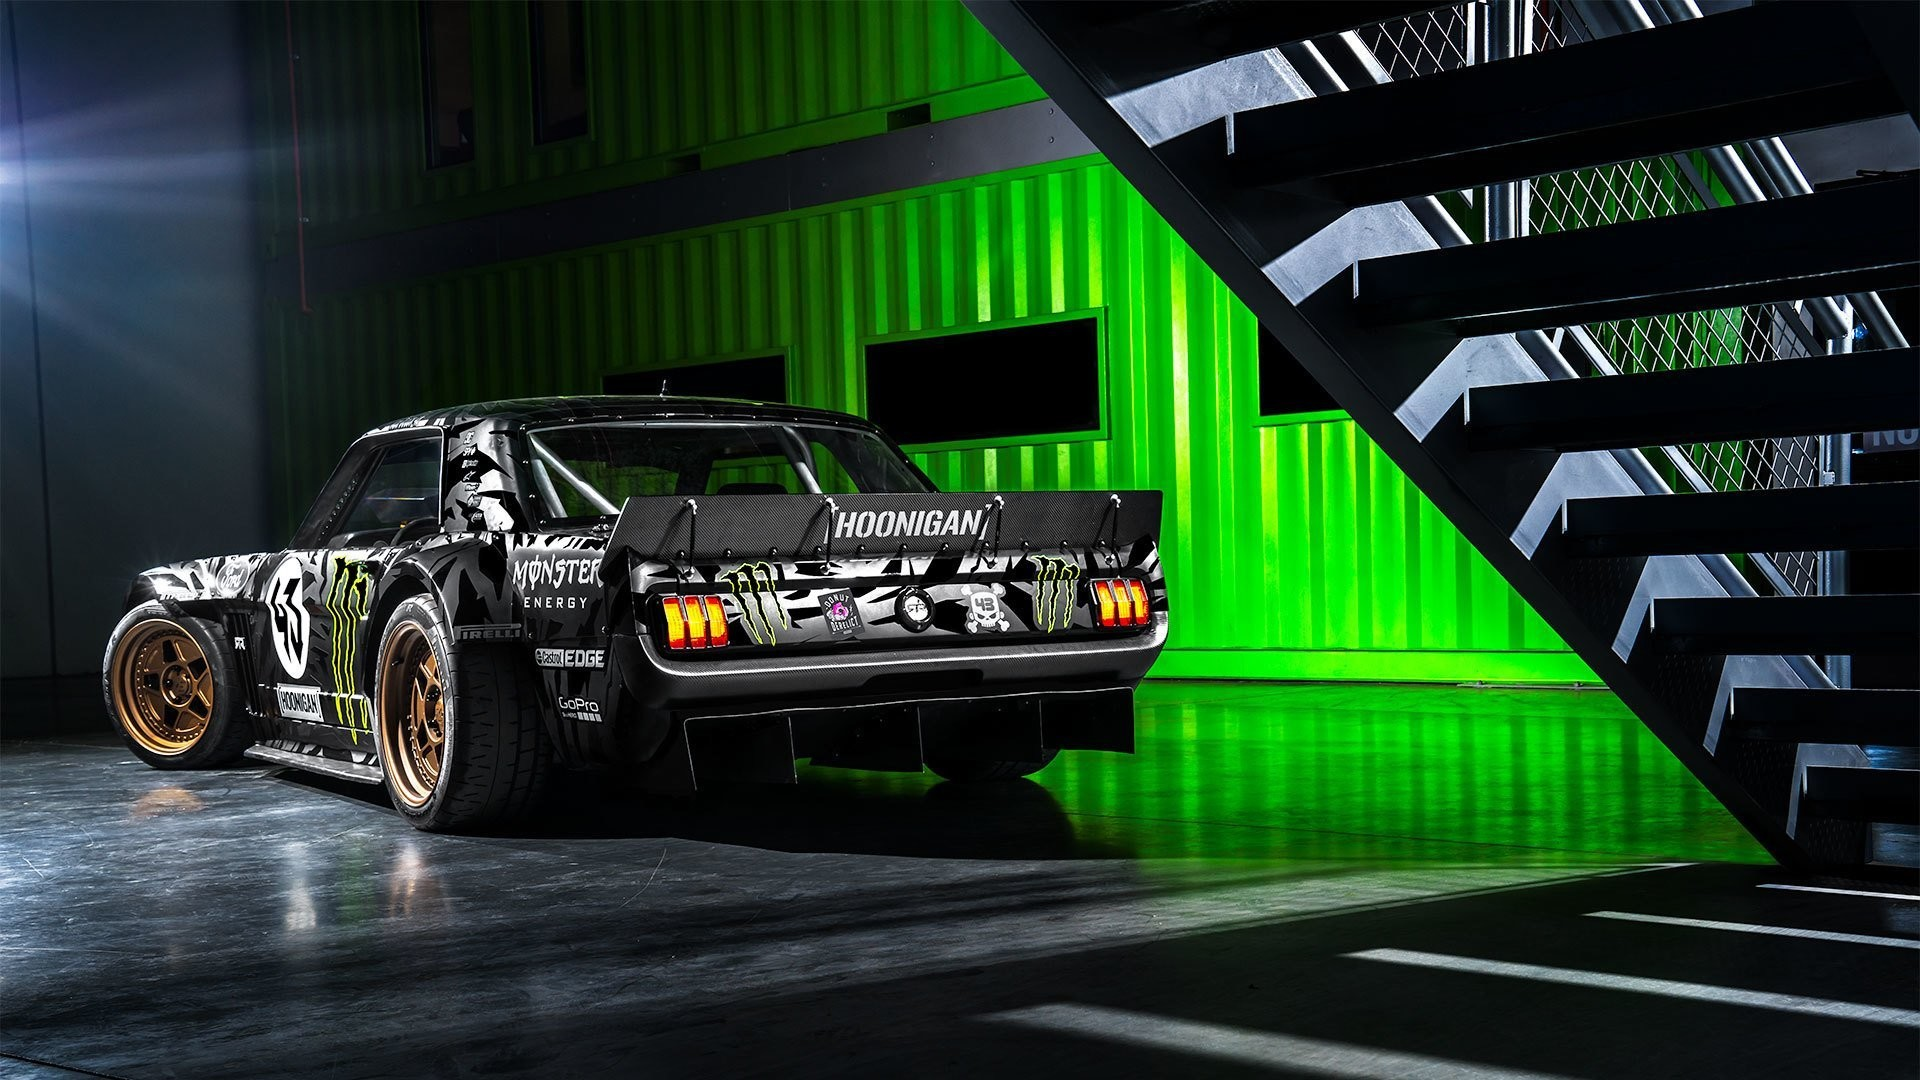 1920x1080 ford mustang rtr 1965 hoonicorn 845 hp gymkhana seven rear ken block  monster energy